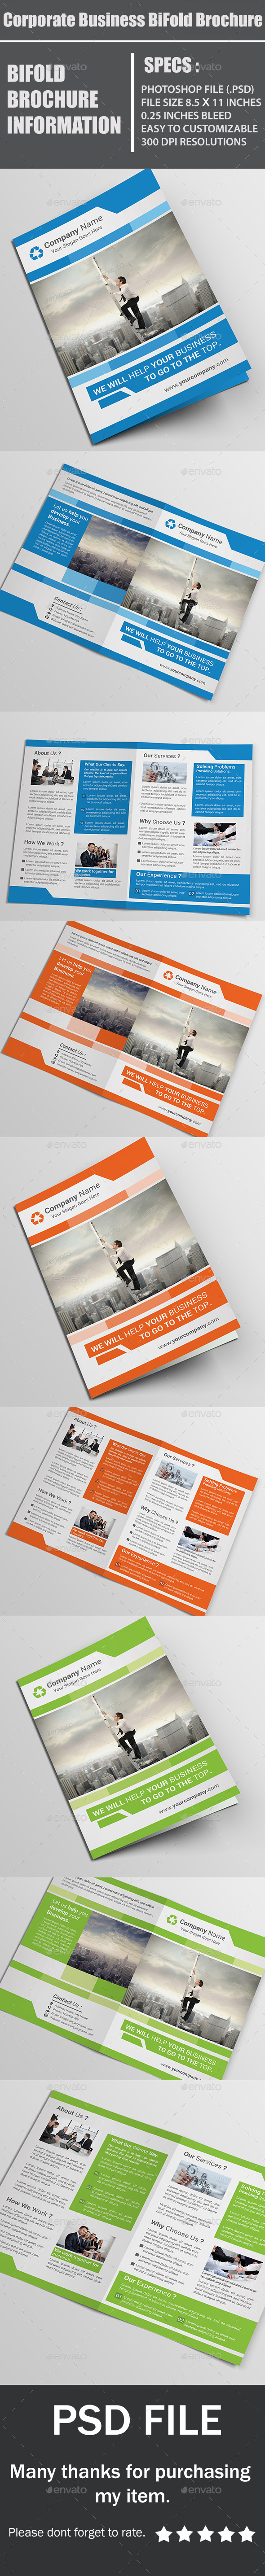 GraphicRiver Corporate Business BiFold Brochure 10833650